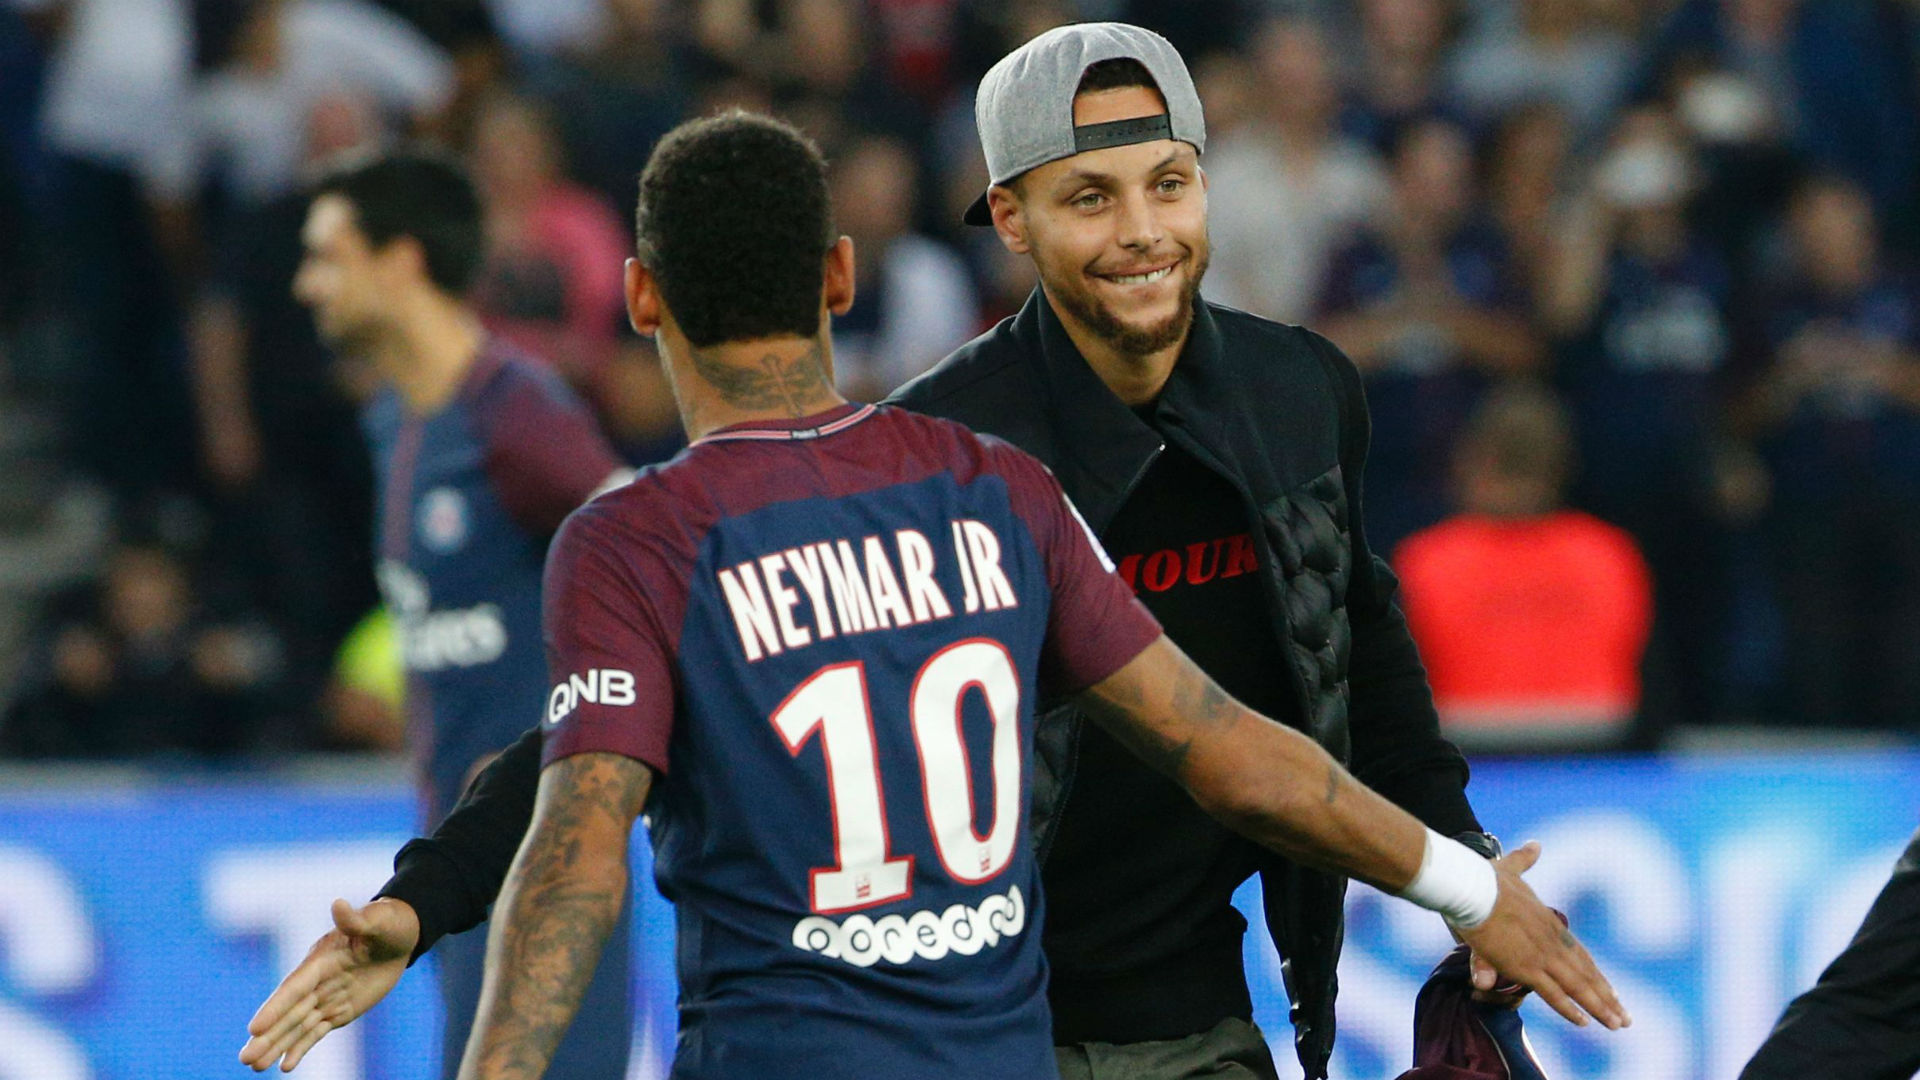 Stephen Curry reunites with Neymar, takes first kick at PSG game